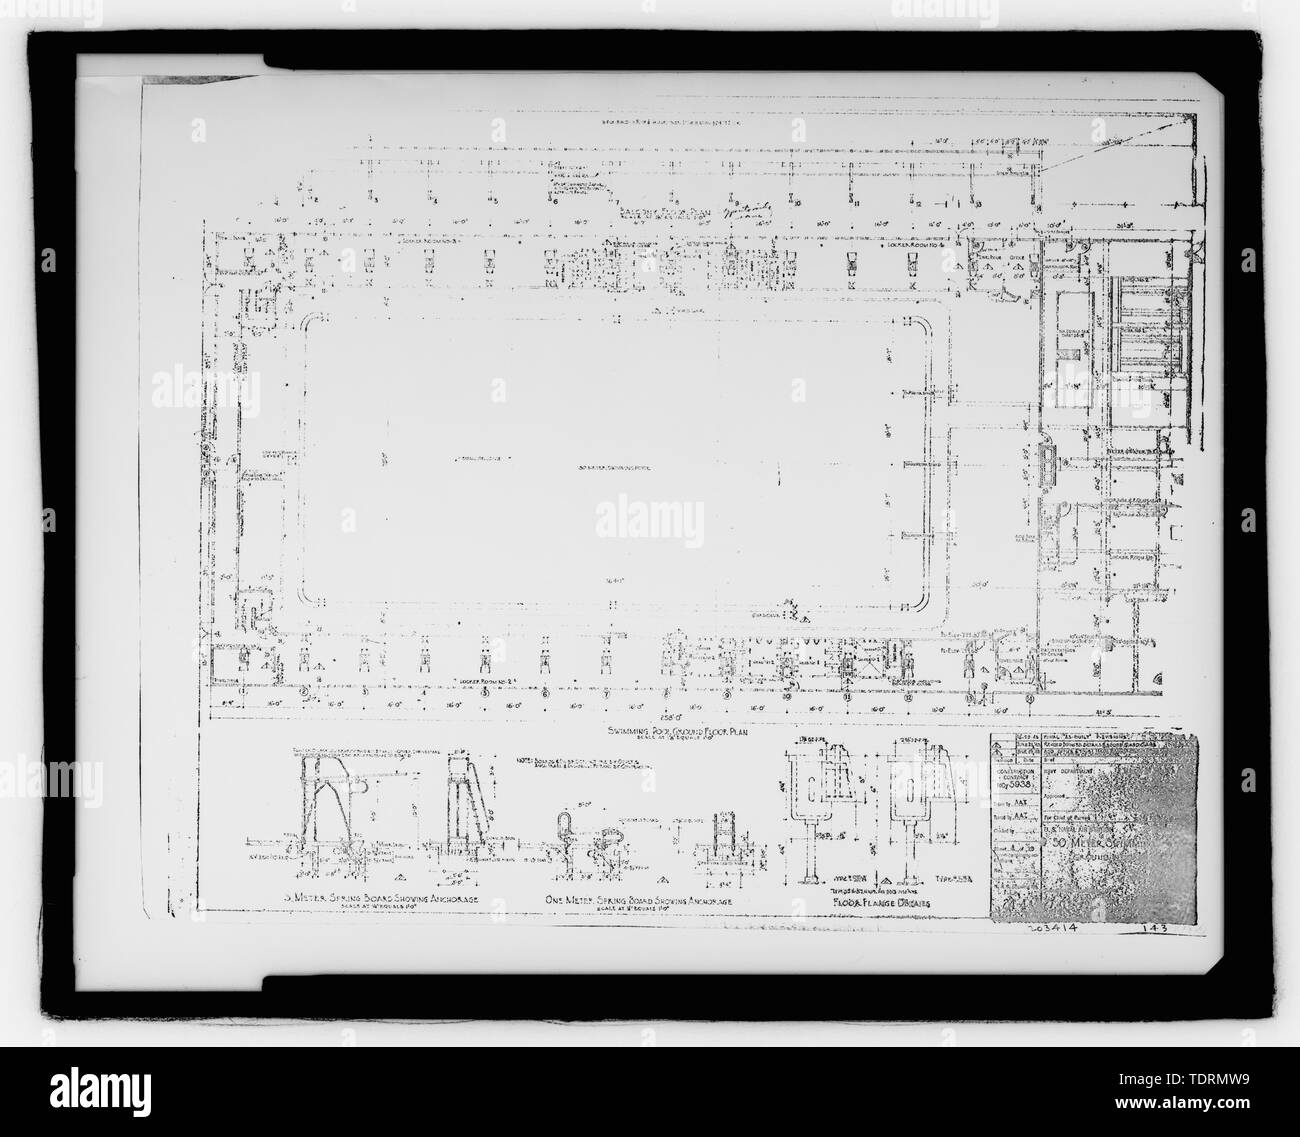 Photographic copy of original construction drawing (dated 1943, in possession of the Grissom Air Force Base Conversion Agency, Grissom Air Reserve Base, Indiana. This source is the same for views 22-25). Ground floor plan - Grissom Air Force Base, Building No. 143, Peru, Miami County, IN; Air Force Base Conversion Agency; U.S. Department of the Navy; Hardlines Design Company, contractor; Portage Environmental, Incorporated (PEI), contractor; Kumar, Rebecca, transmitter; Bates, Jeff, photographer; Atkins, Parker, historian; Lyman, Malini, historian Stock Photo